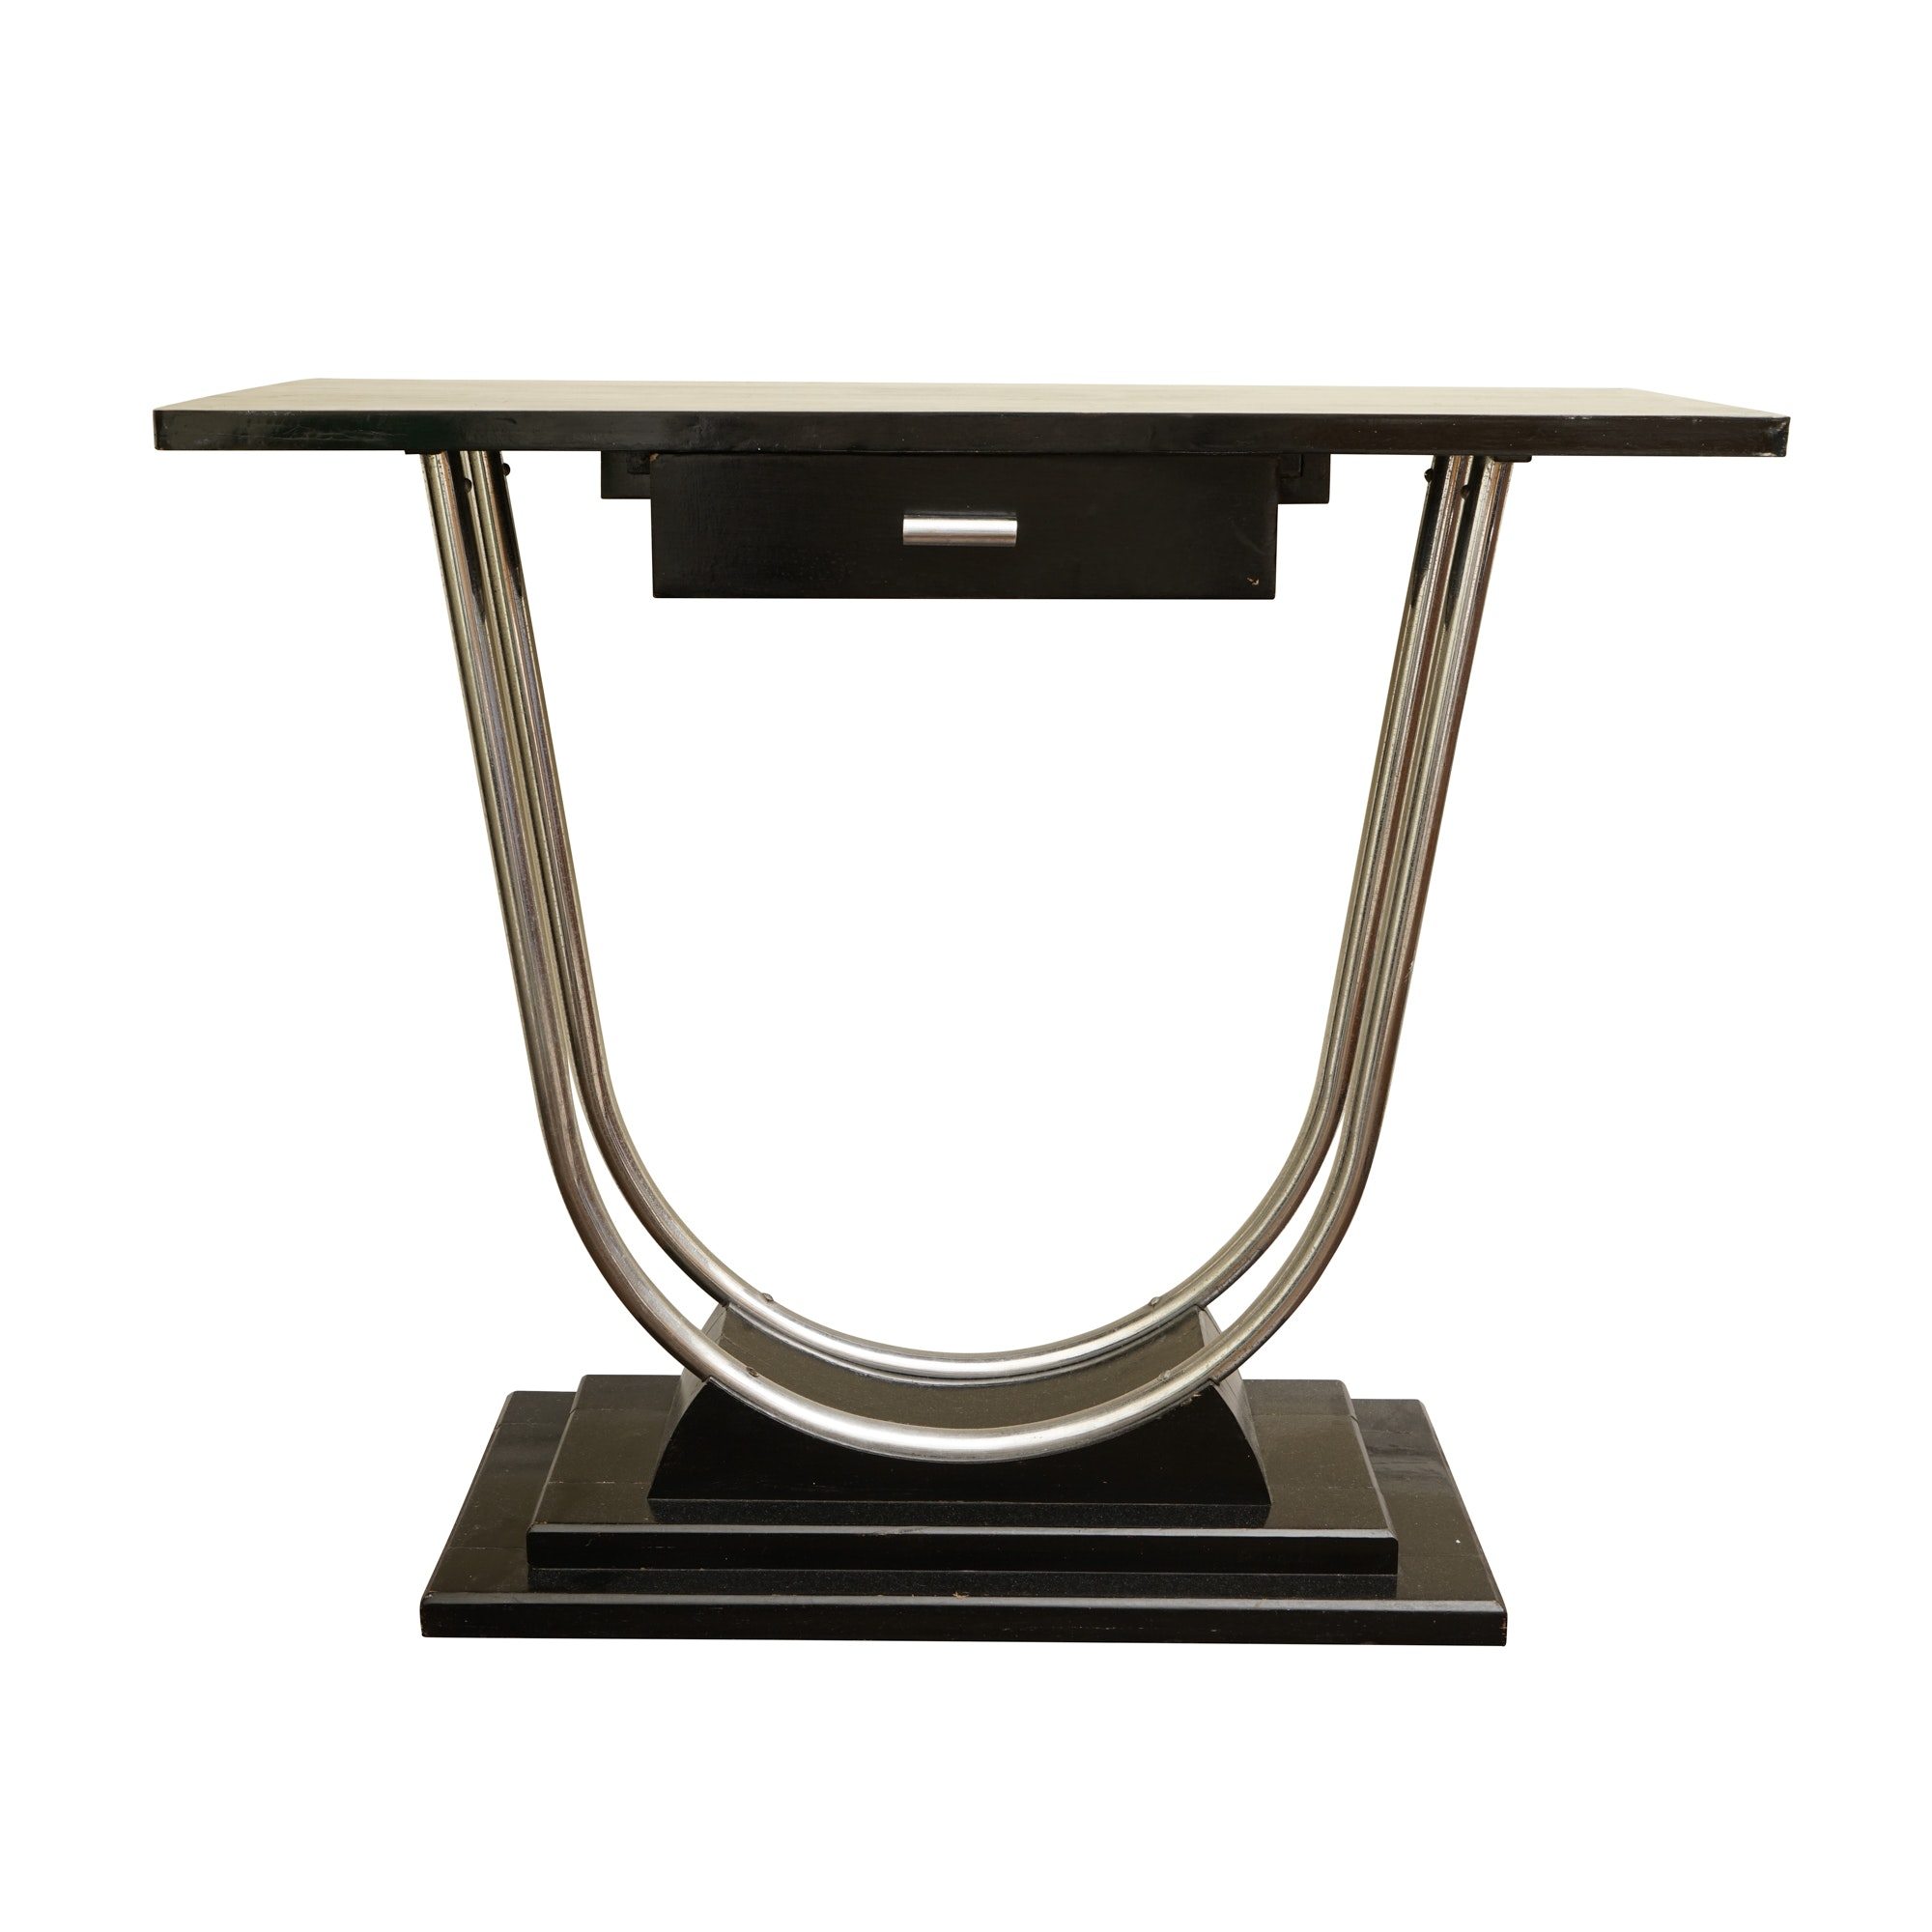 Art Deco Chromed Metal and Ebonized Wood Console Table